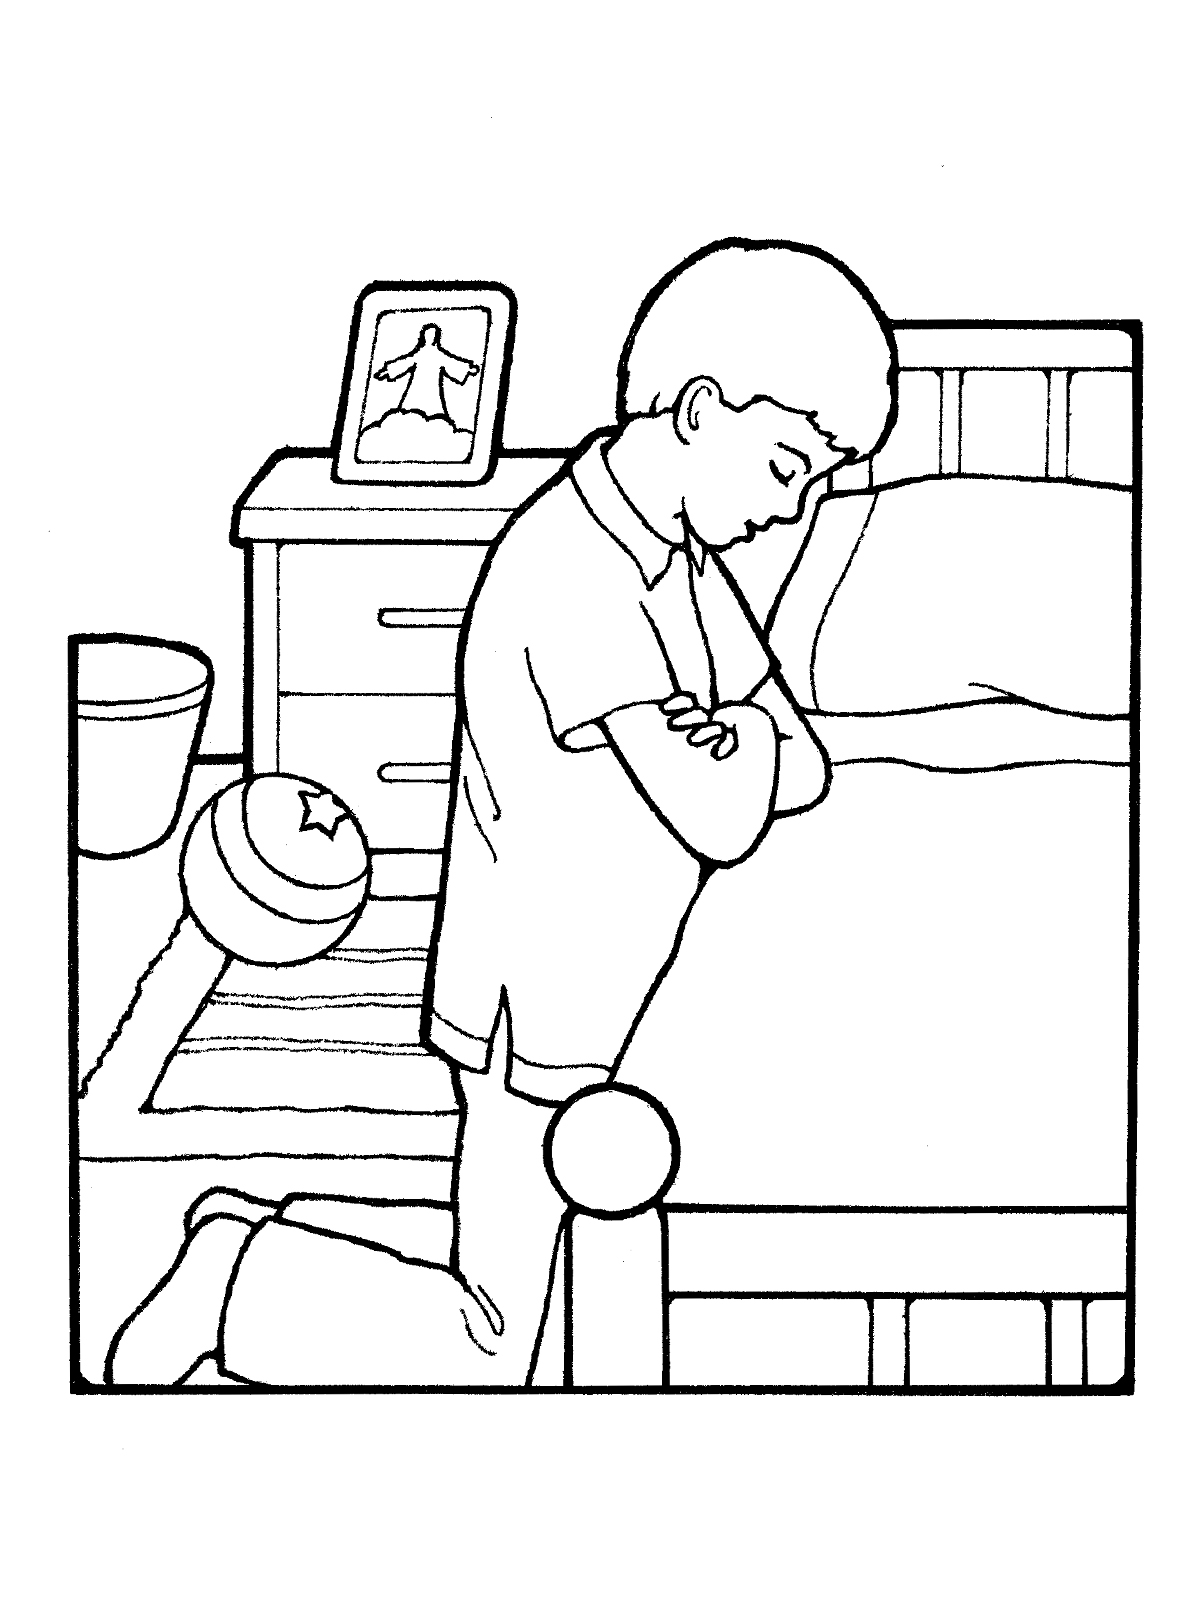 kids prayer coloring pages - photo#23